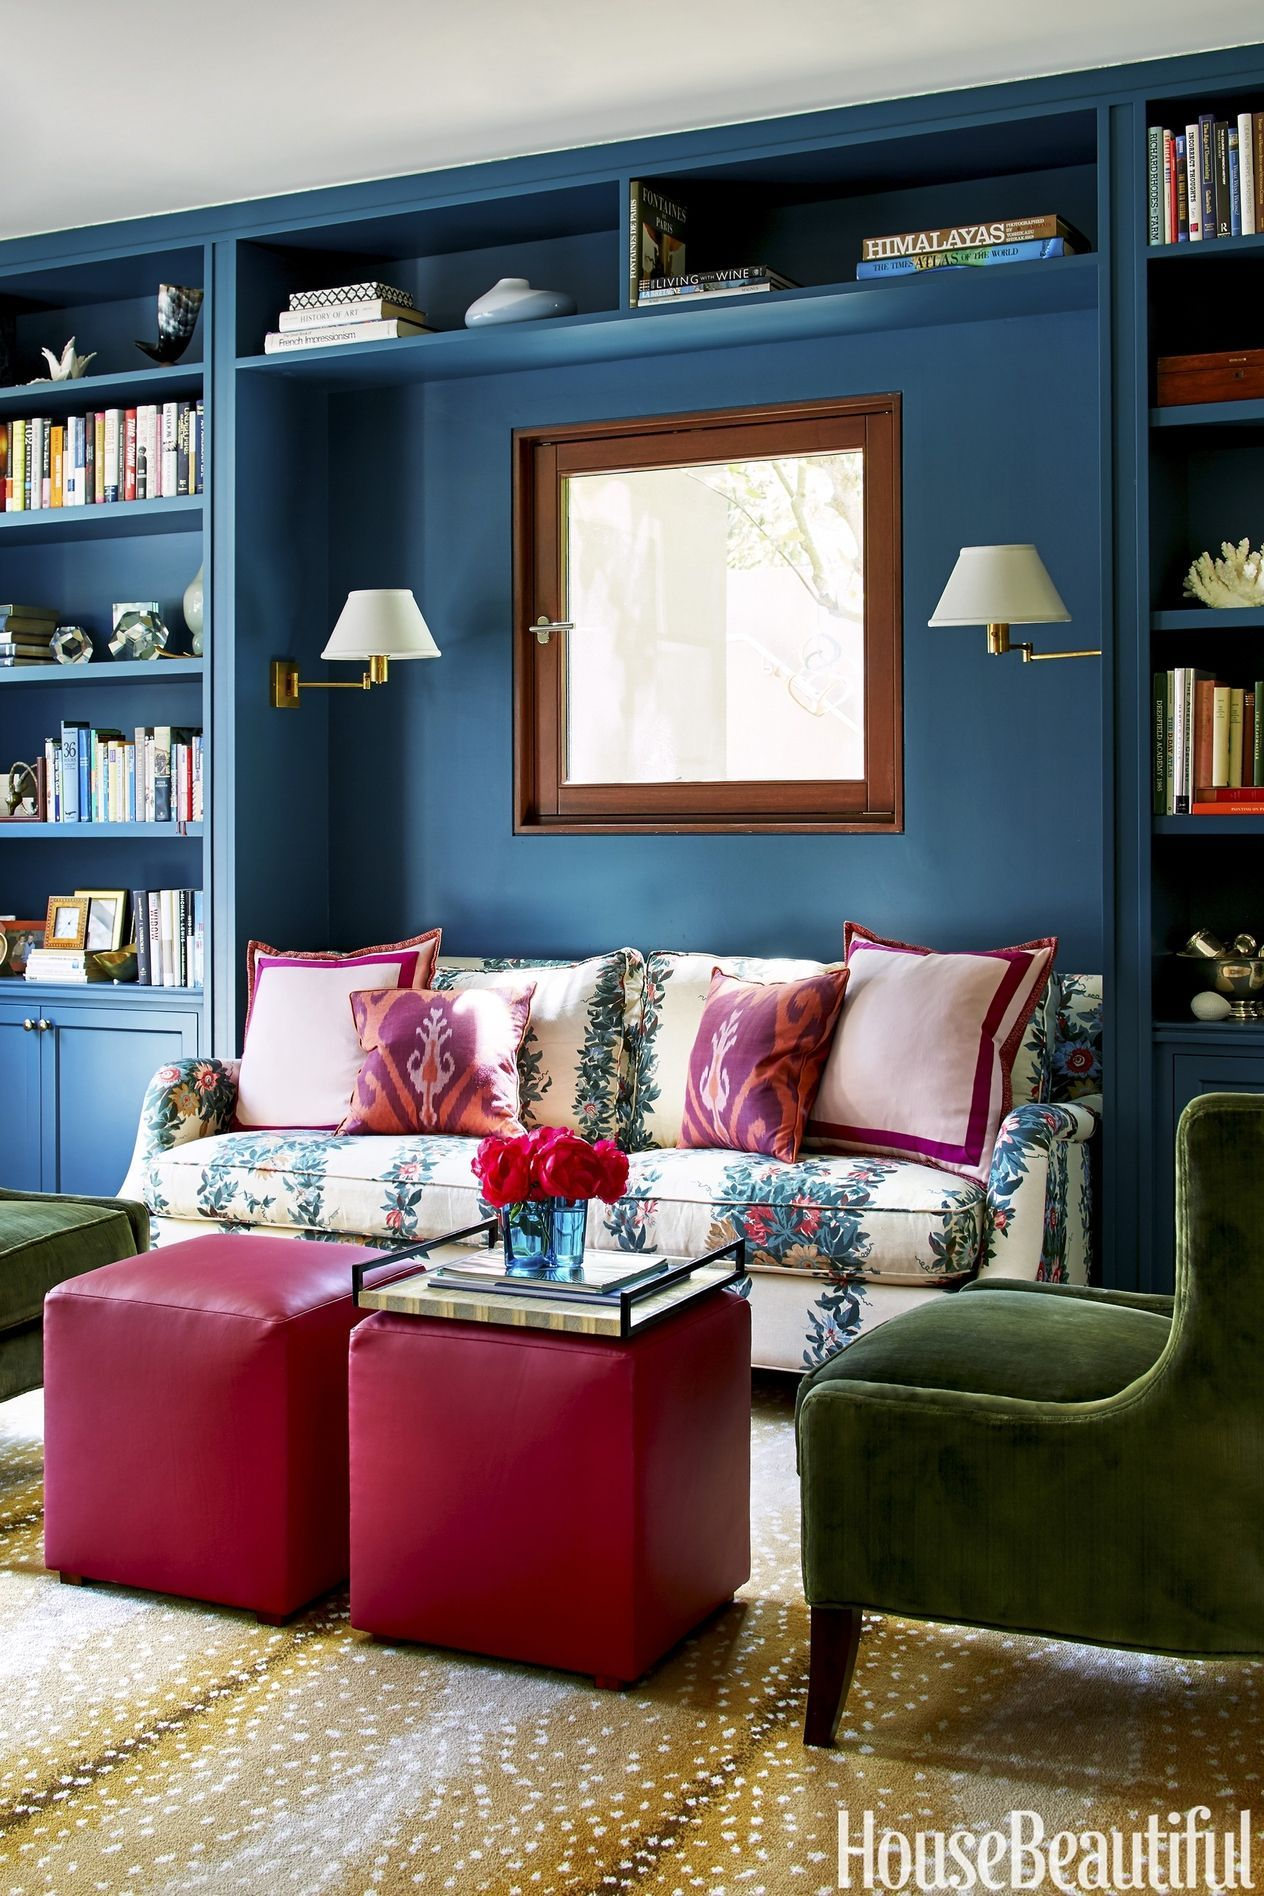 15 Best Small Living Room Ideas - How to Design a Small ... on Small Space Small Living Room Ideas  id=96499